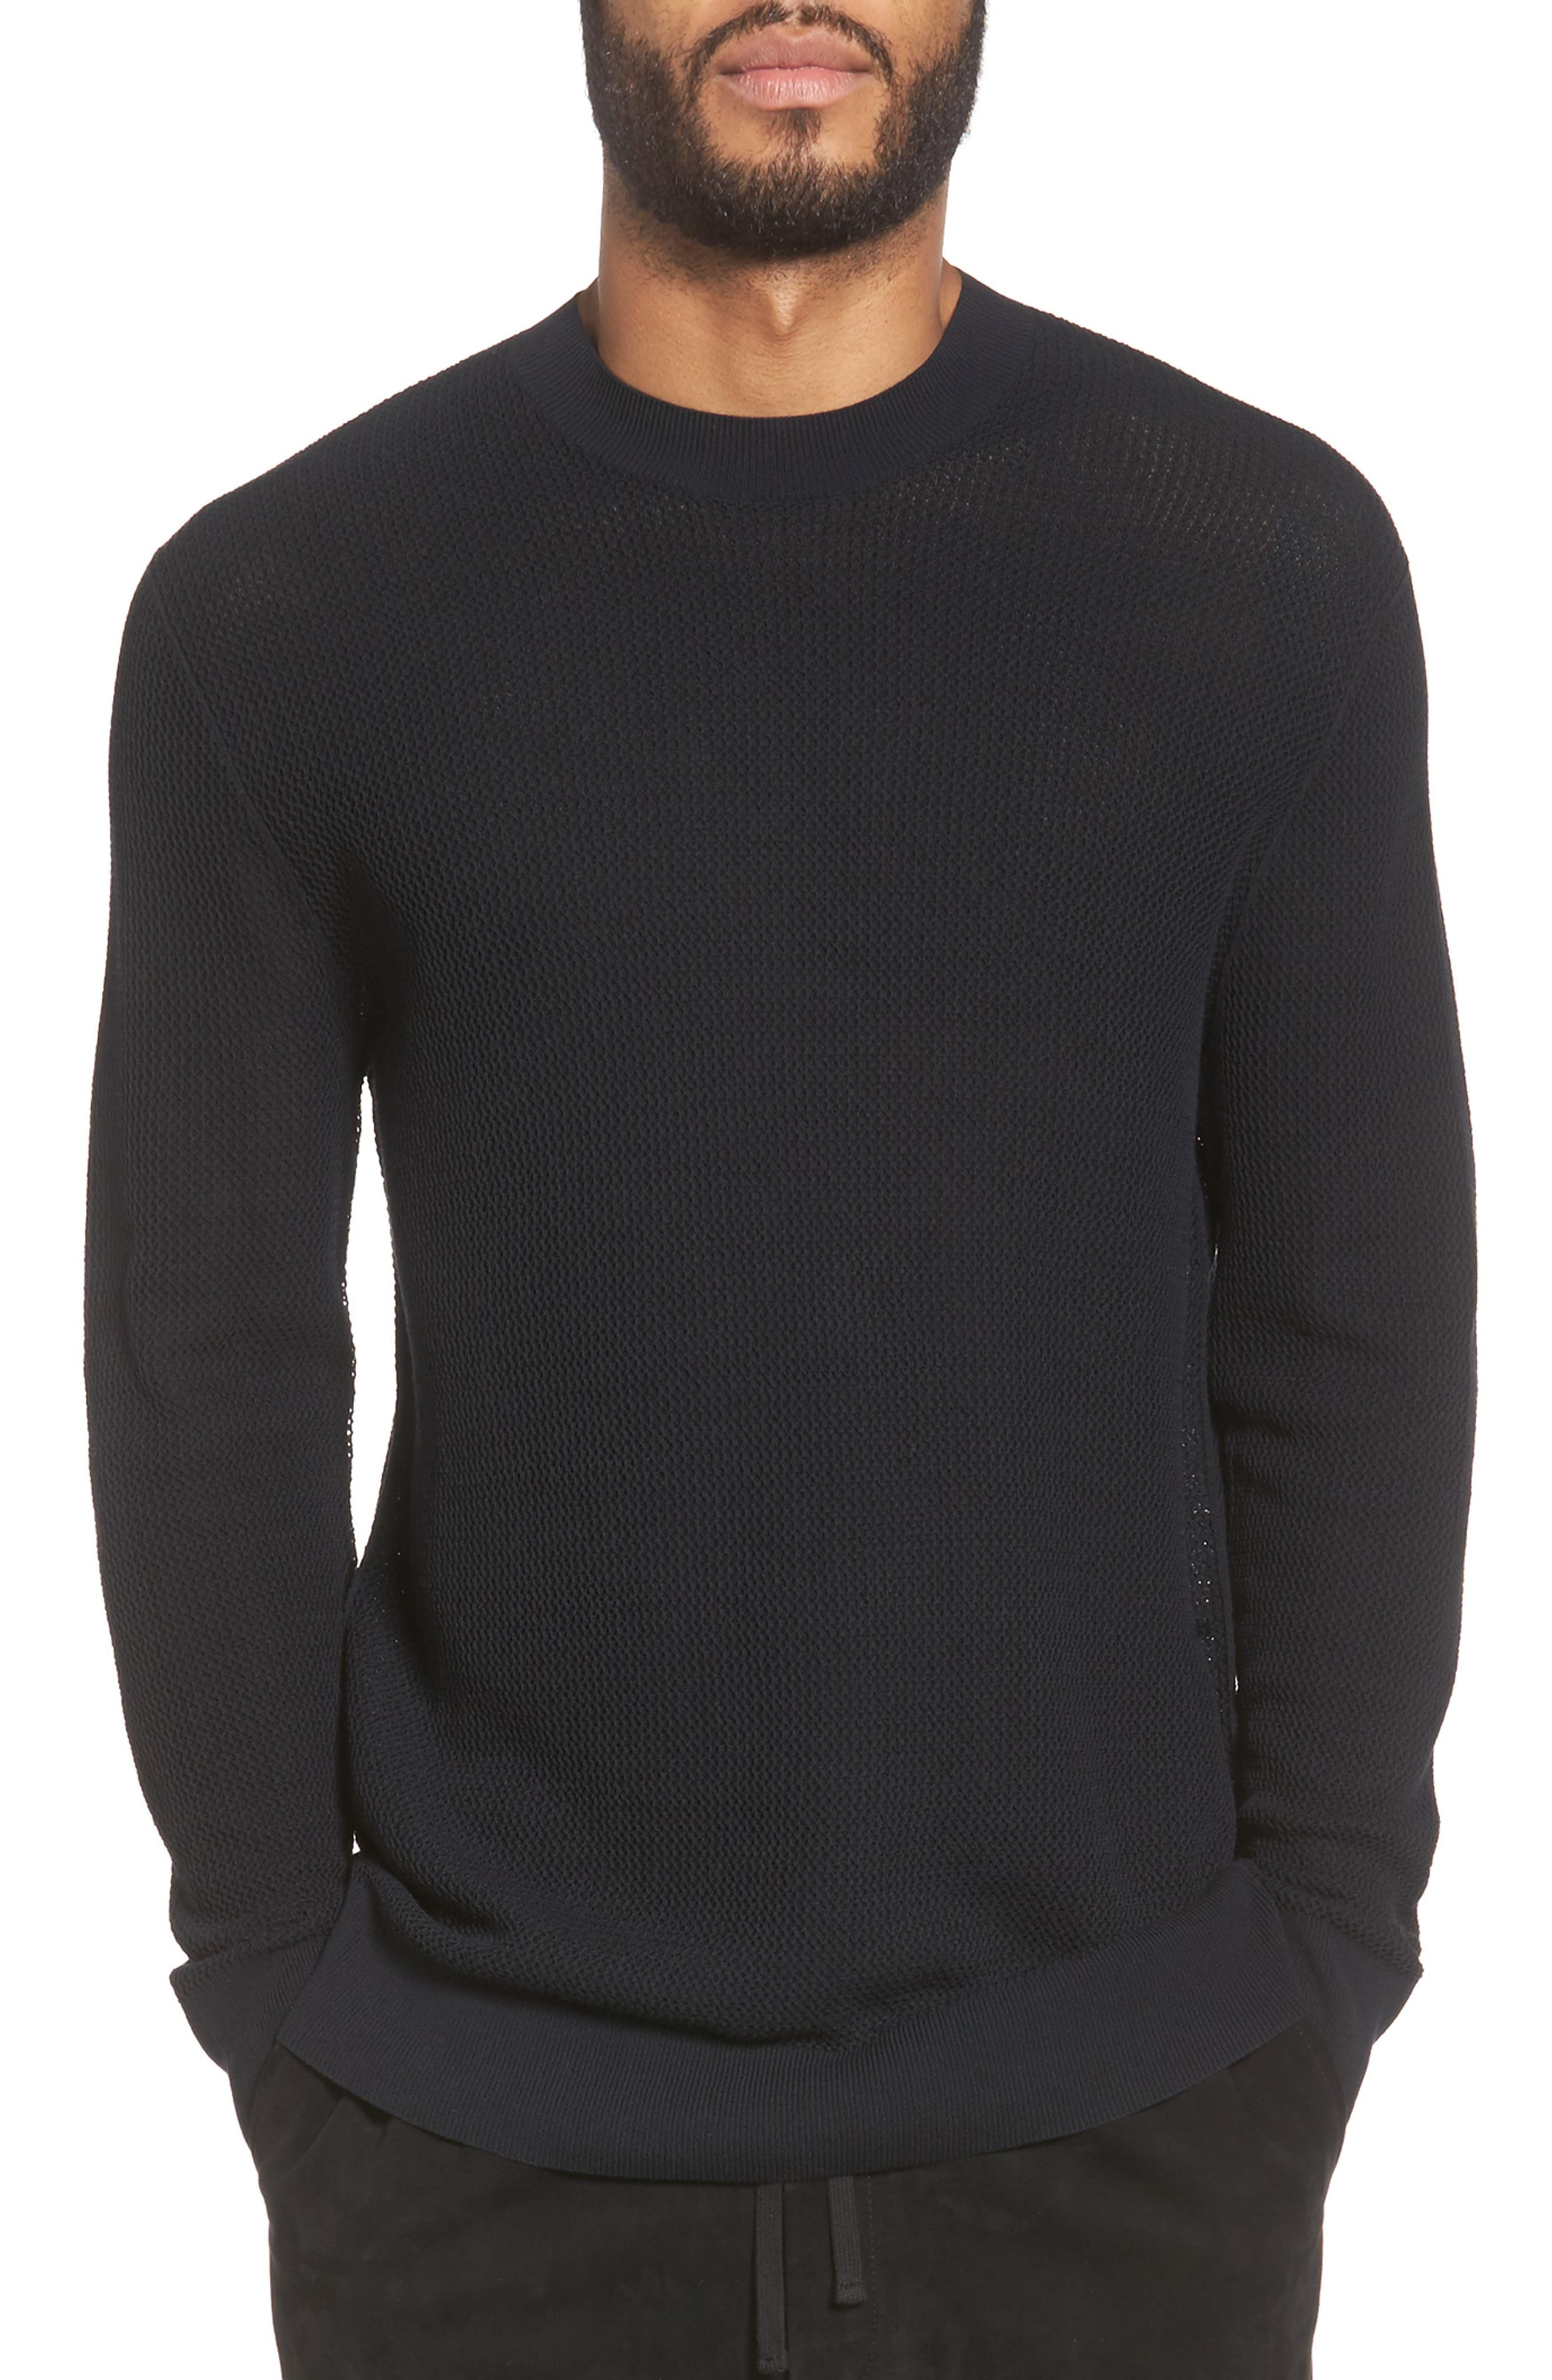 Mesh Crewneck Sweater,                         Main,                         color, 001